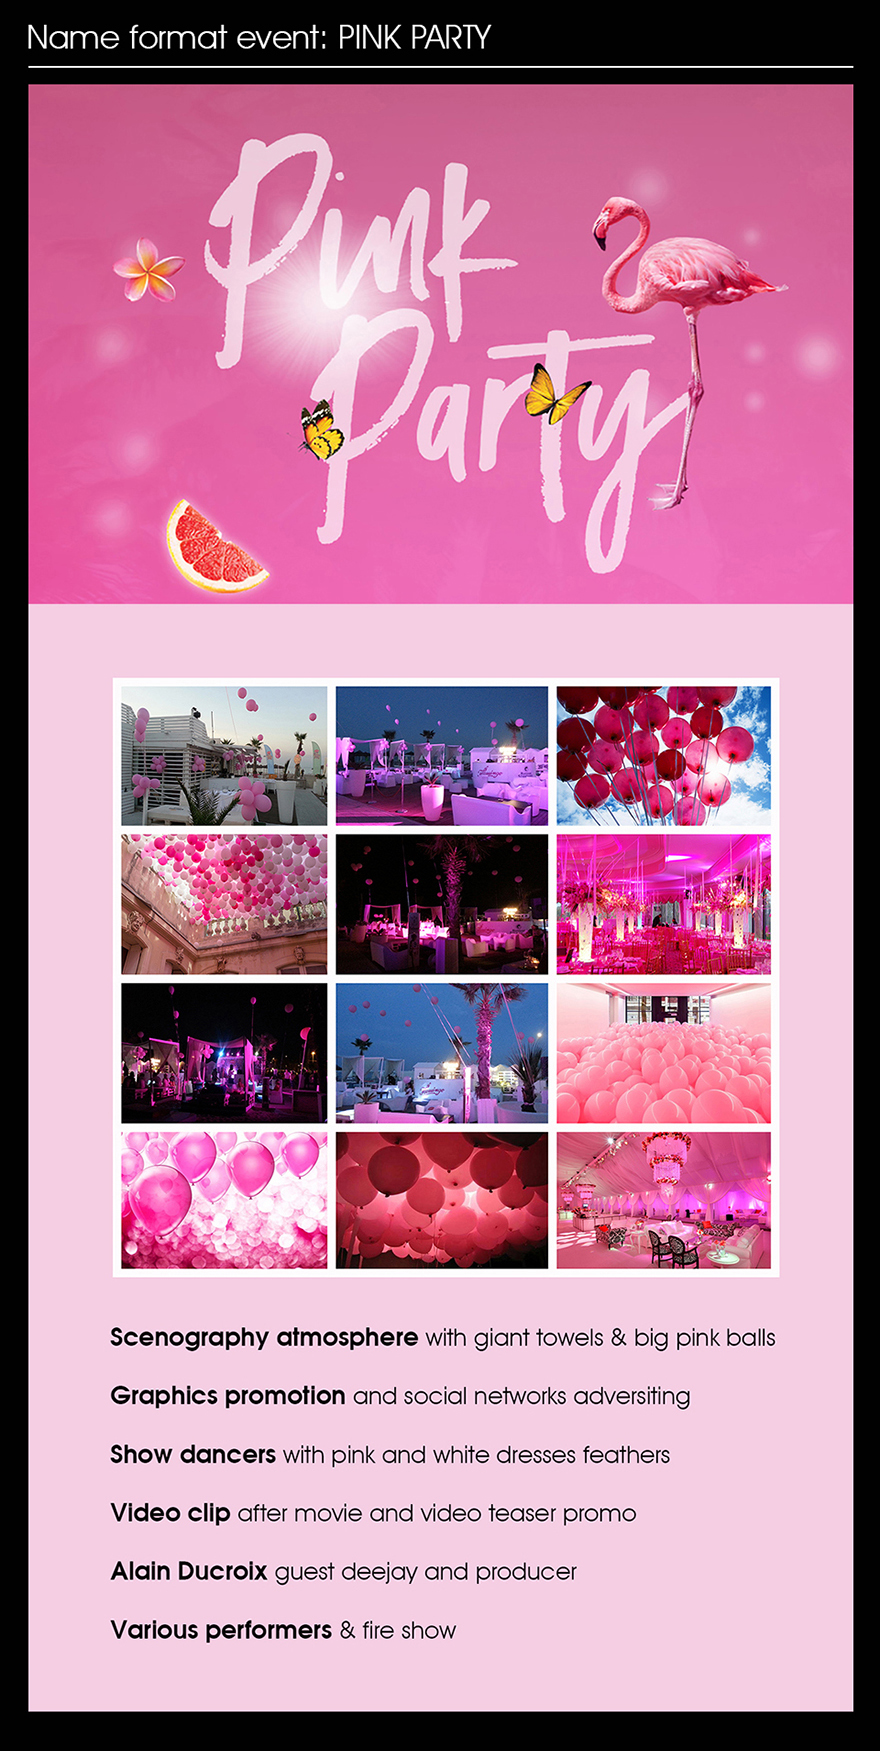 PINK-PARTY-OFFICIAL